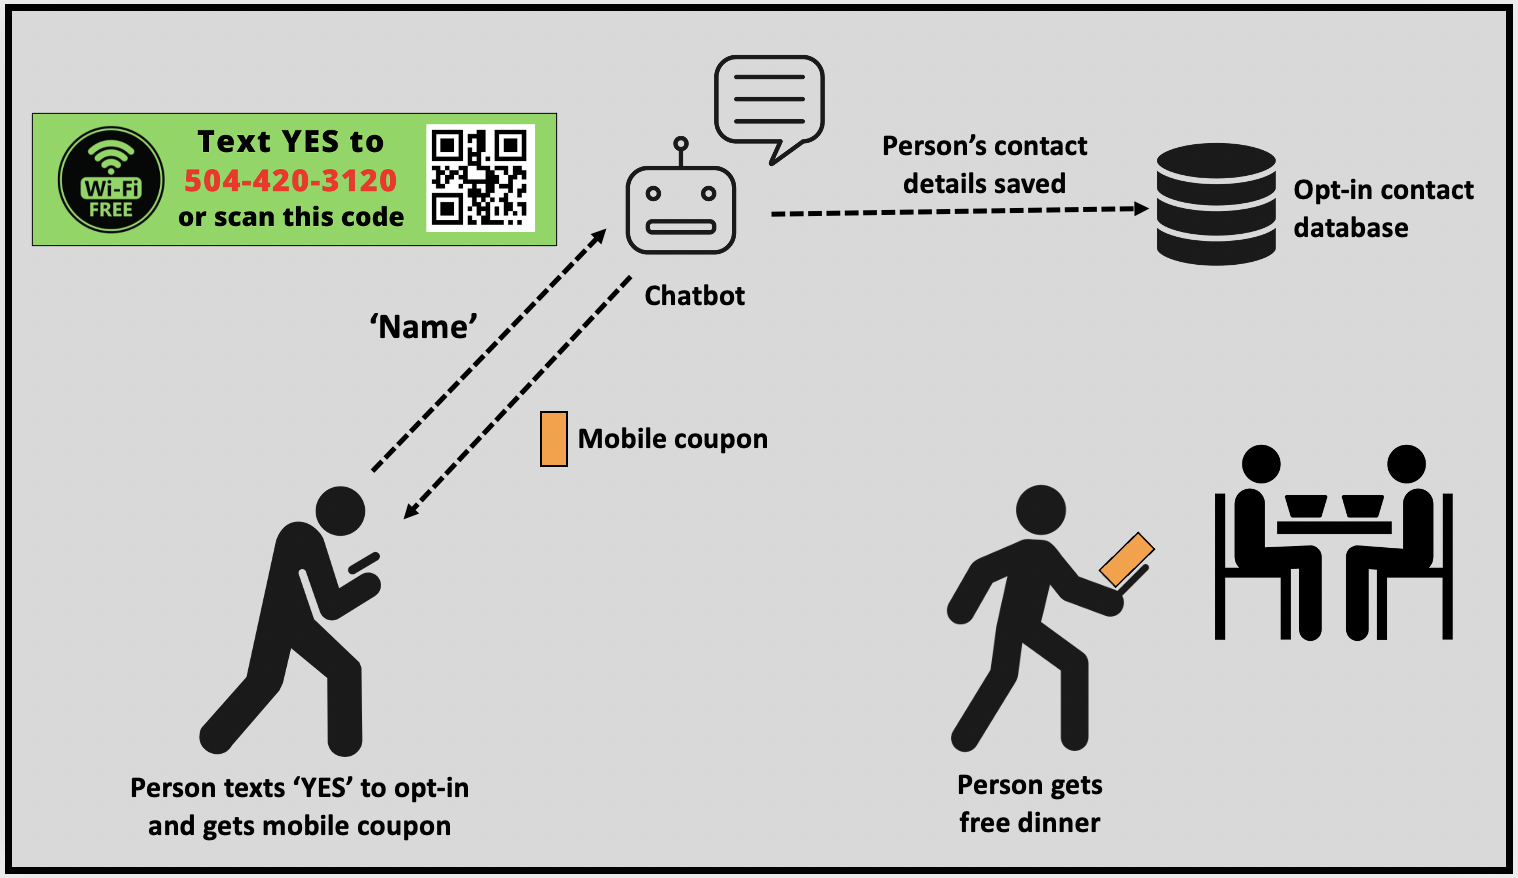 Use special offers with mobile coupons to encourage the needy to opt in to get further messages